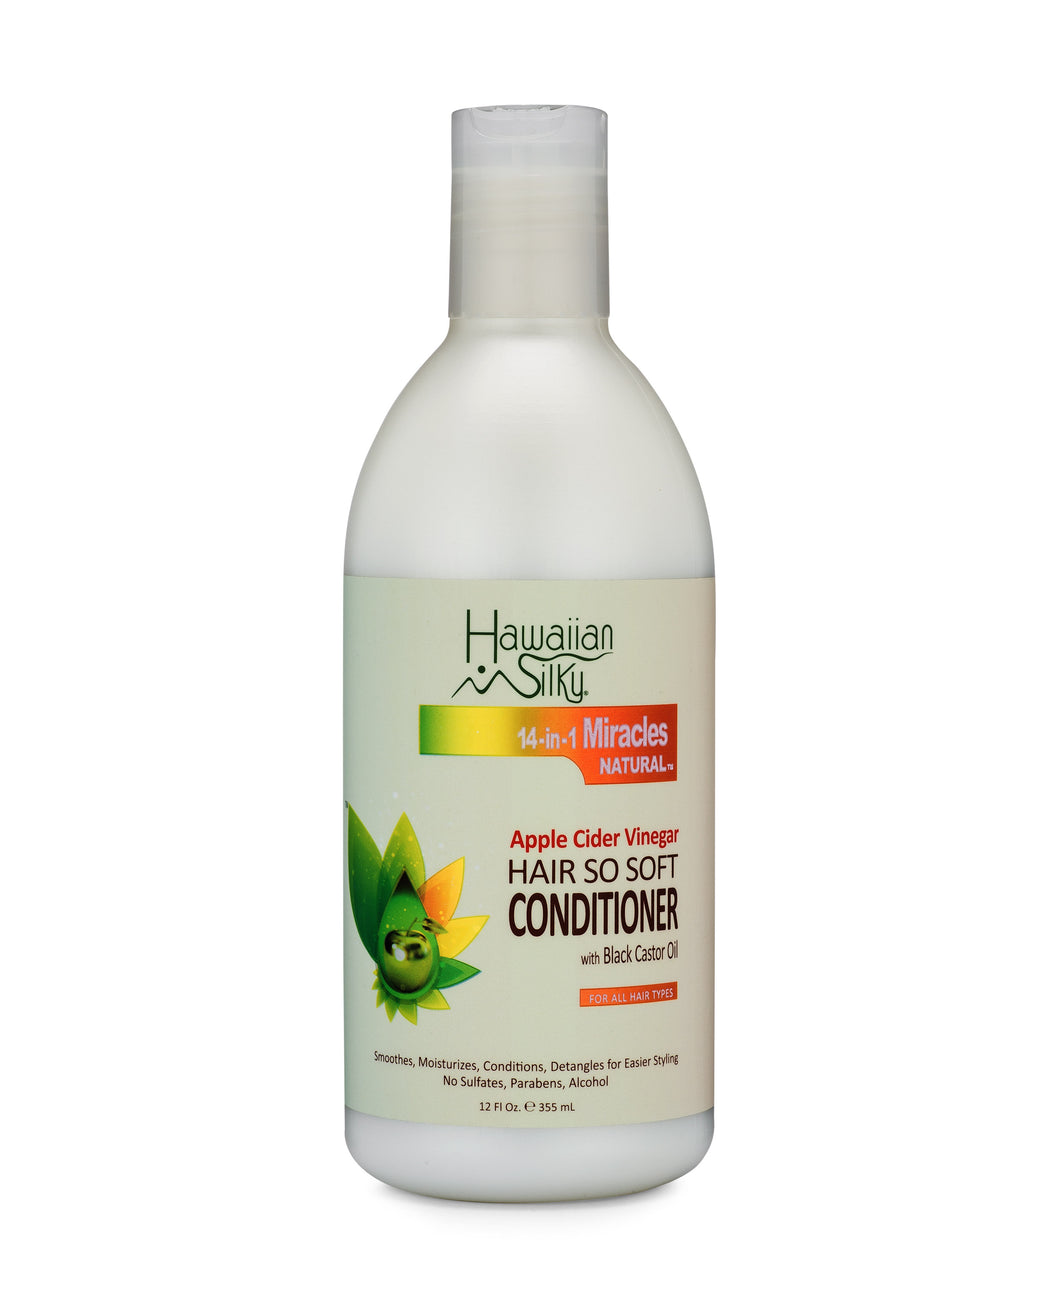 Hawaiian Silky 14-in-1 Miracles Natural Hair So Soft Conditioner